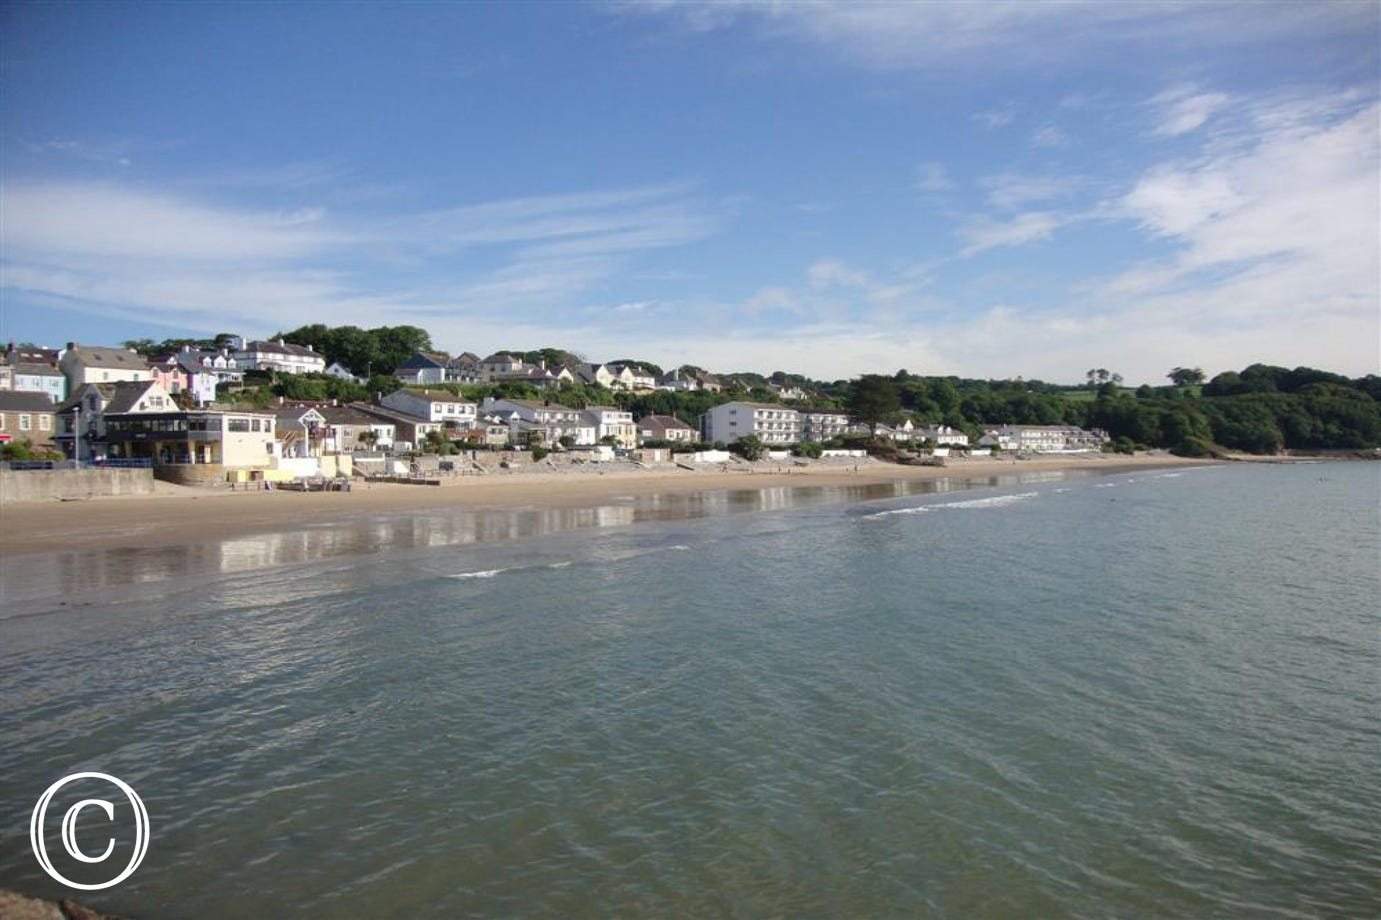 Nearby Saundersfoot is a stunning coastal location with great beaches, harbour and shops.